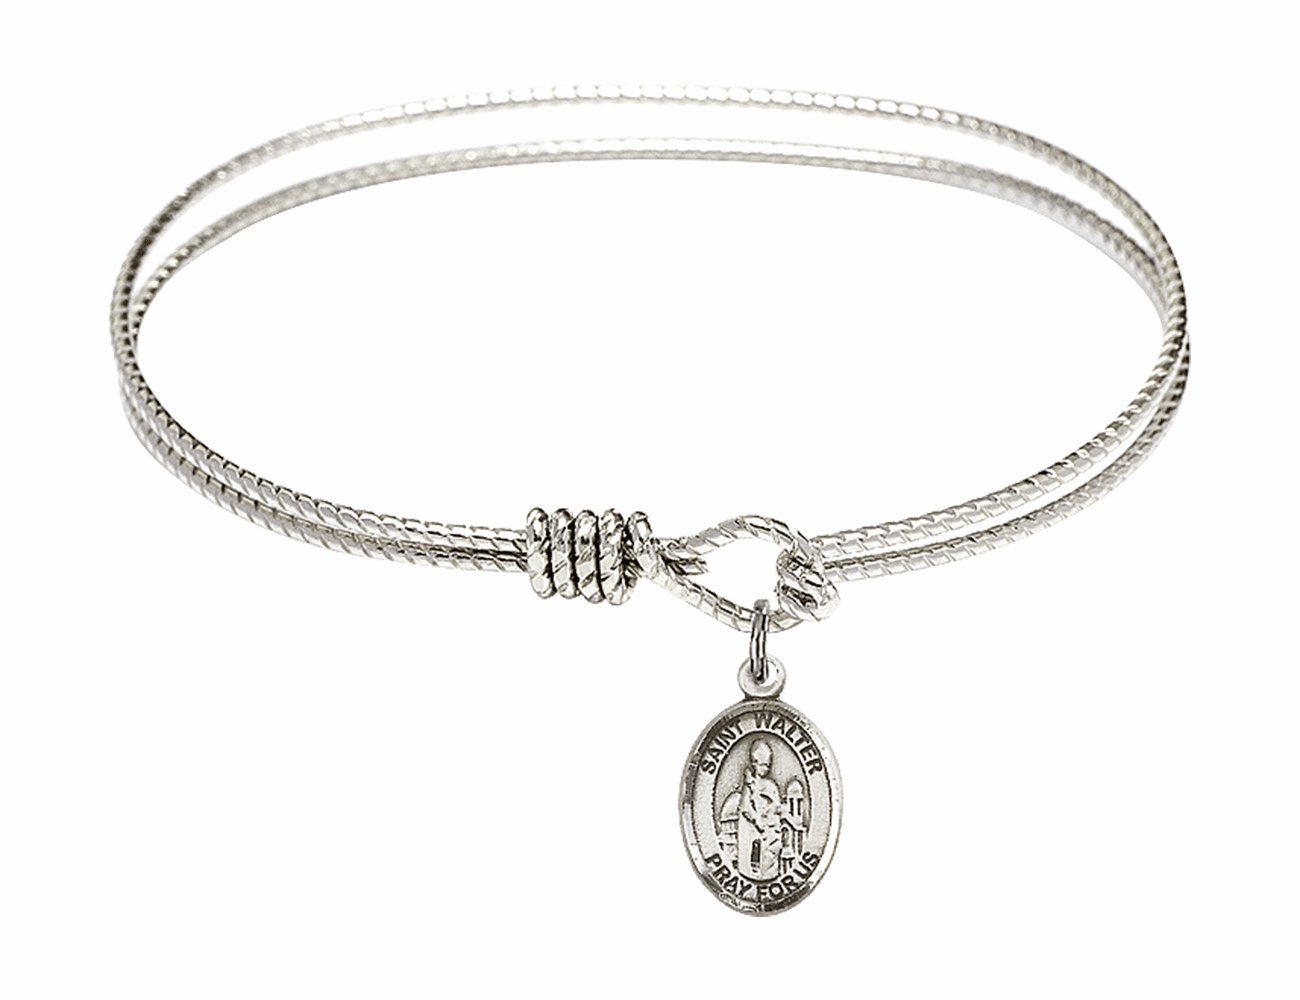 St Walter of Pontnoise Textured Bangle w/Sterling Charm Bracelet by Bliss